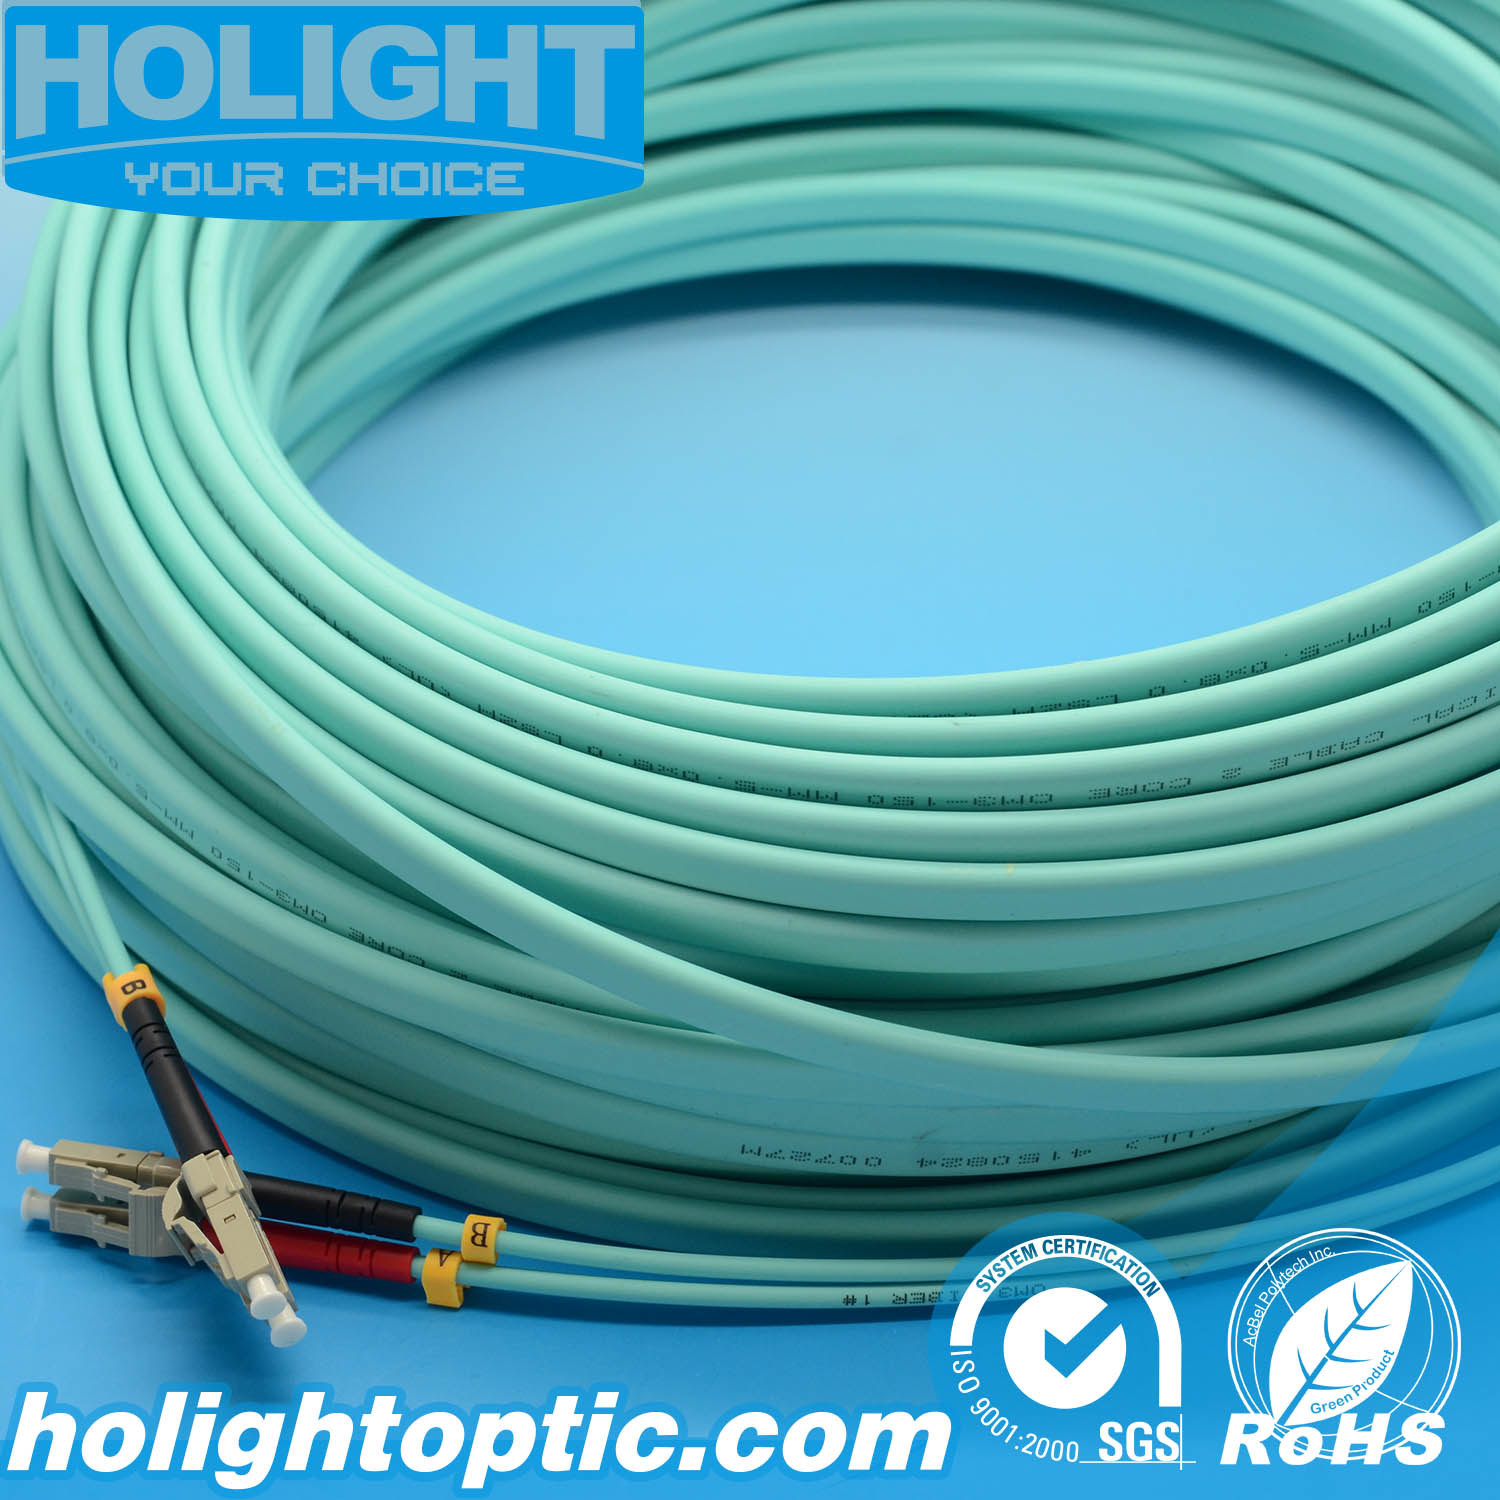 Wholesale Fiber Optic Patchcord Buy Reliable Kabel Optik From Wholesalers On Made In Chinacom